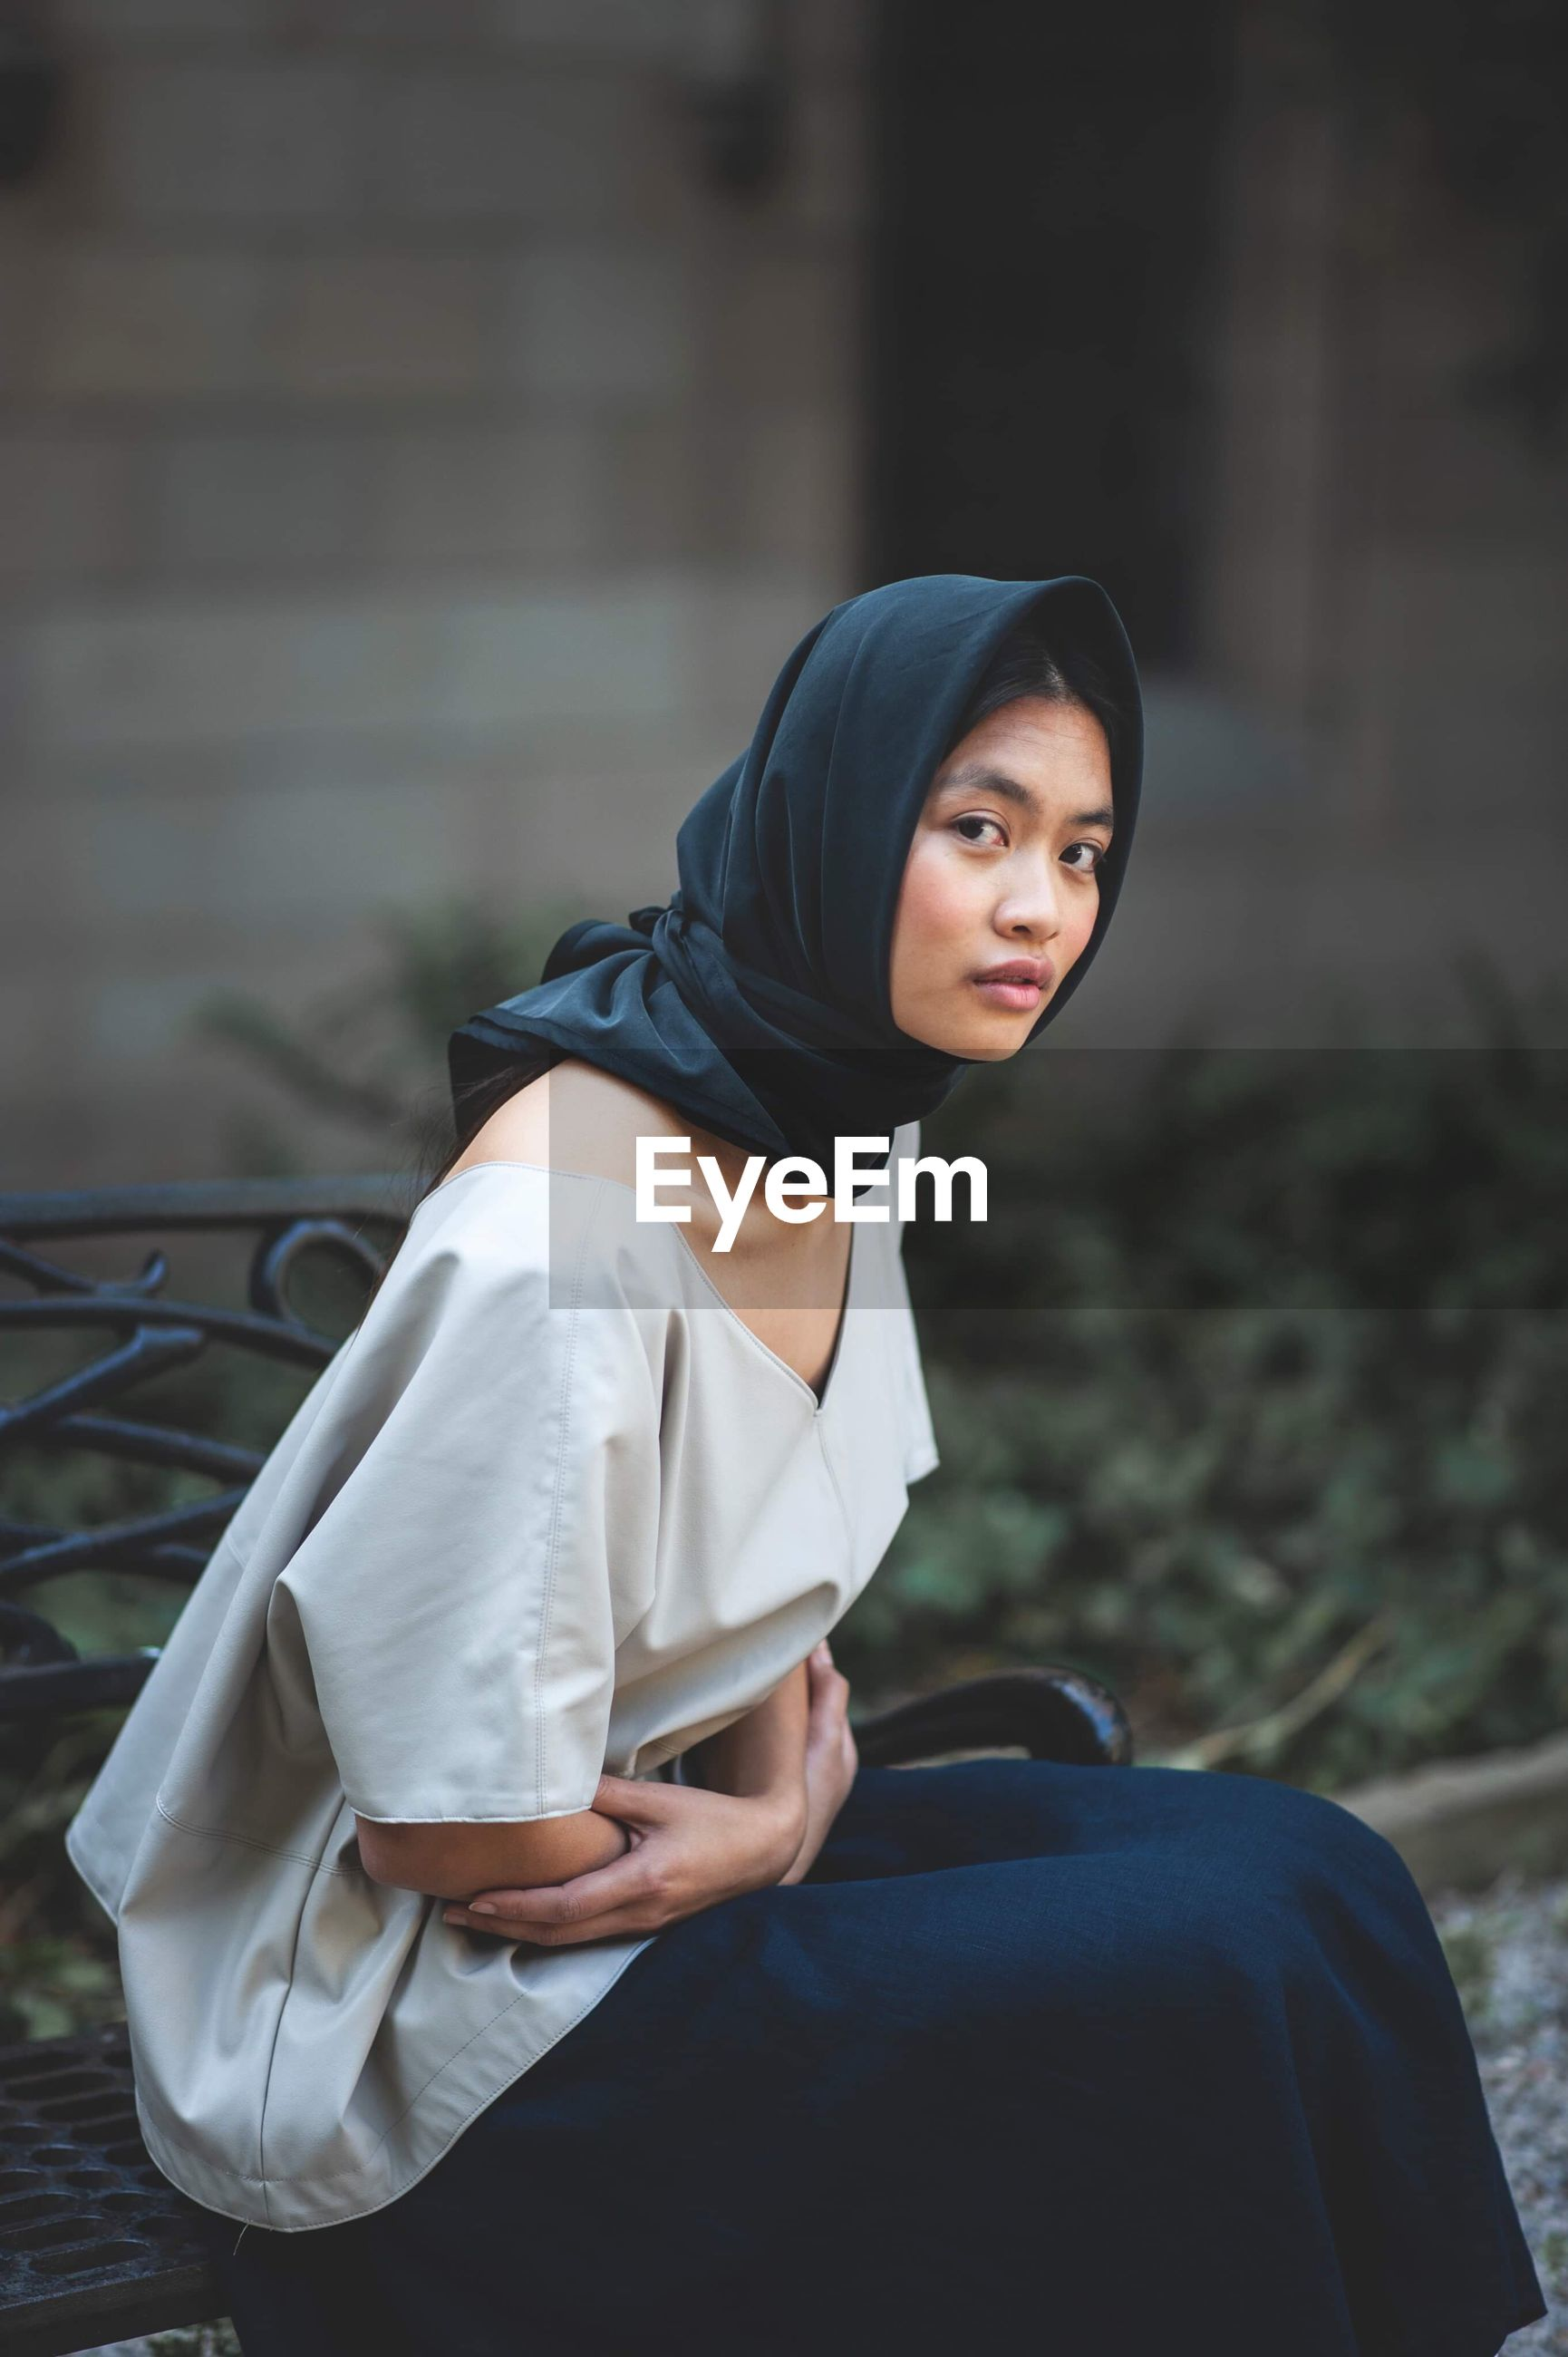 real people, one person, lifestyles, focus on foreground, sitting, three quarter length, leisure activity, young adult, clothing, day, casual clothing, looking, outdoors, side view, portrait, looking away, women, adult, contemplation, teenager, hood - clothing, hairstyle